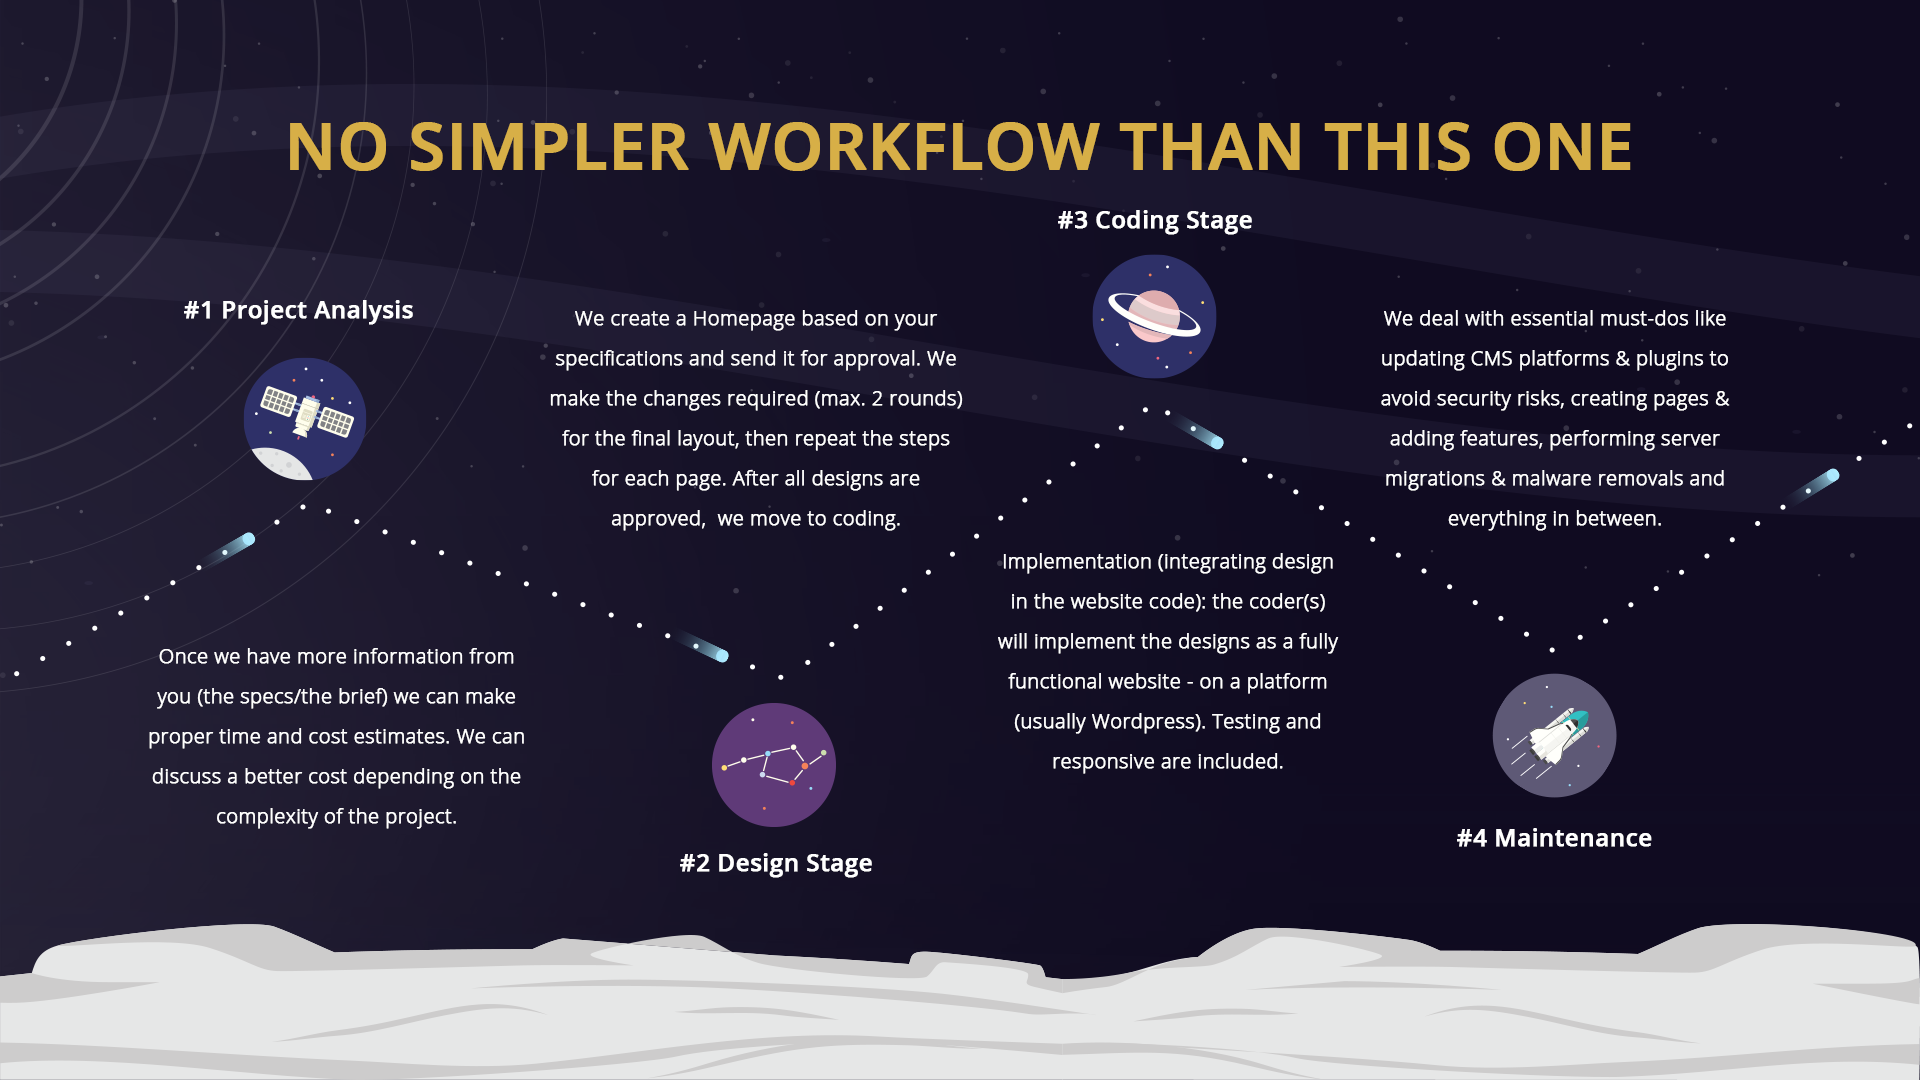 eJump design and coding workflow for web projects